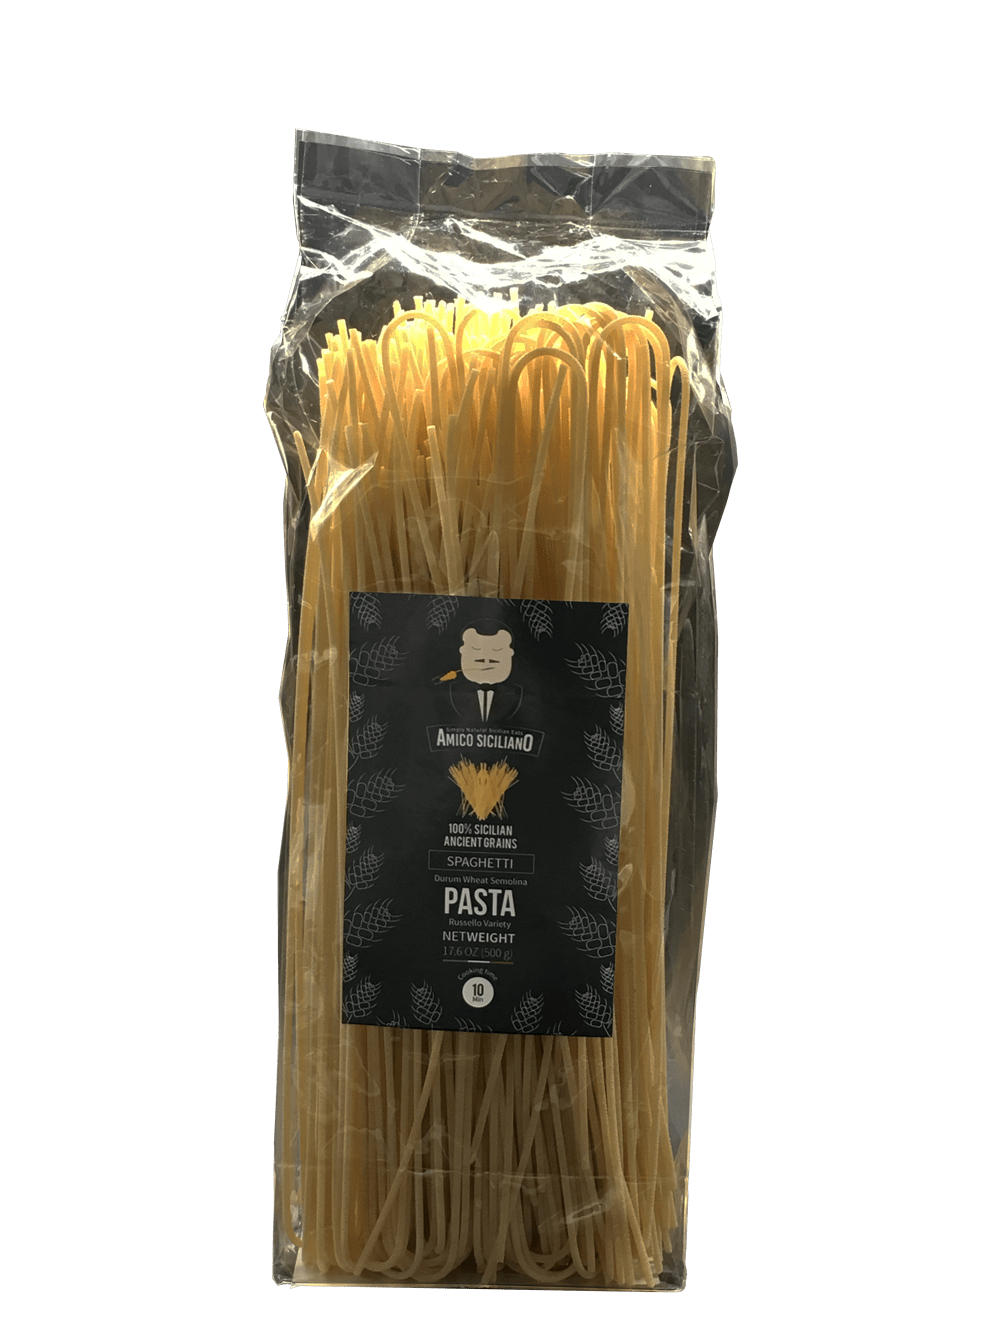 Noodle clipart linguine. Amico siciliano products artisanal